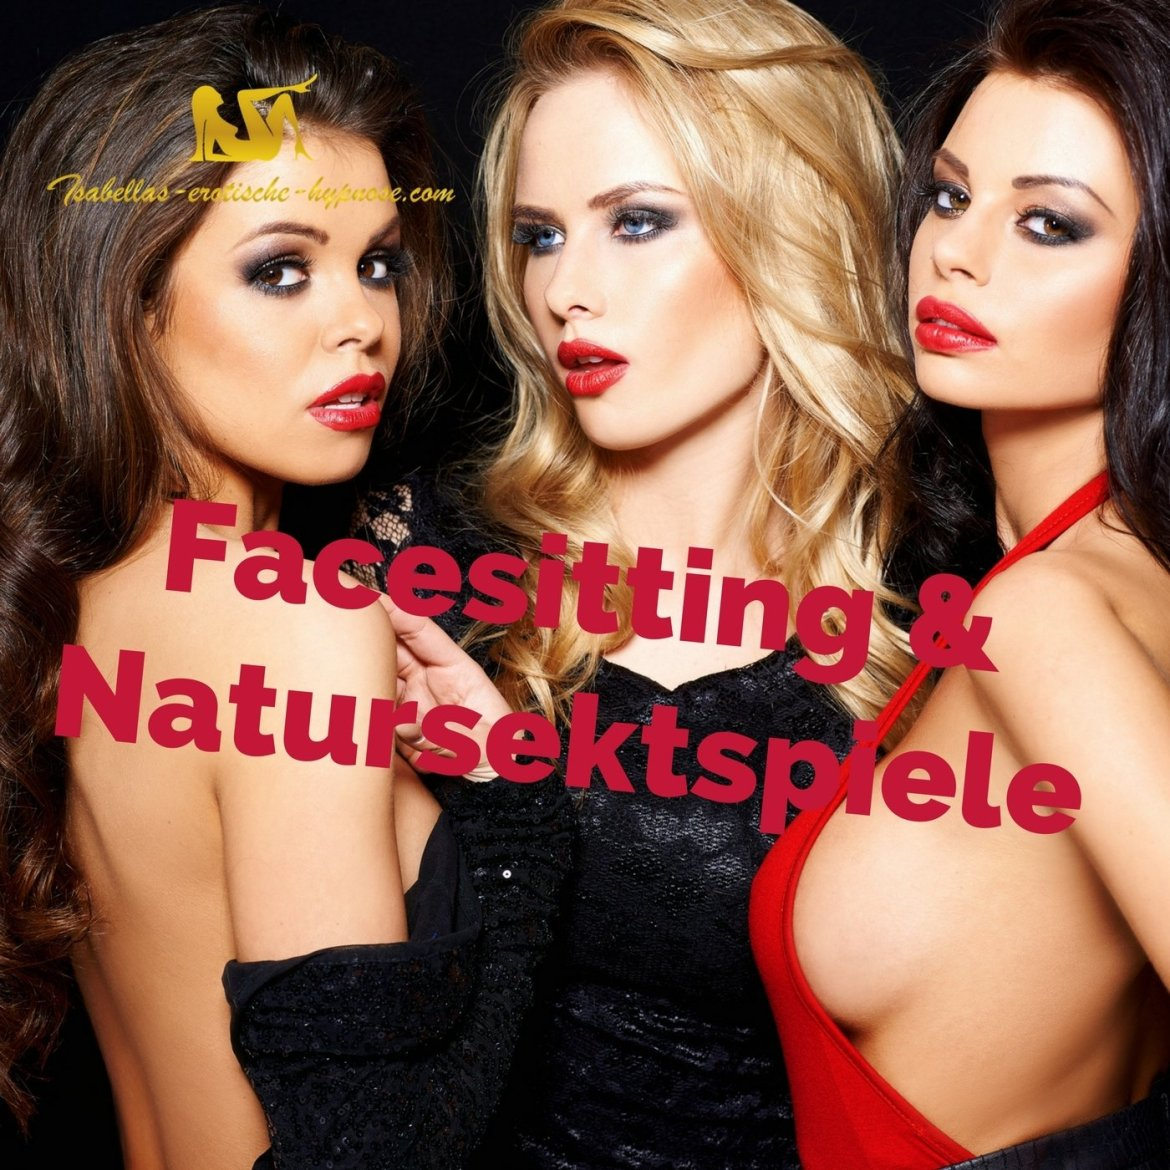 Facesitting und Natursektspiele by Lady Isabella 00028